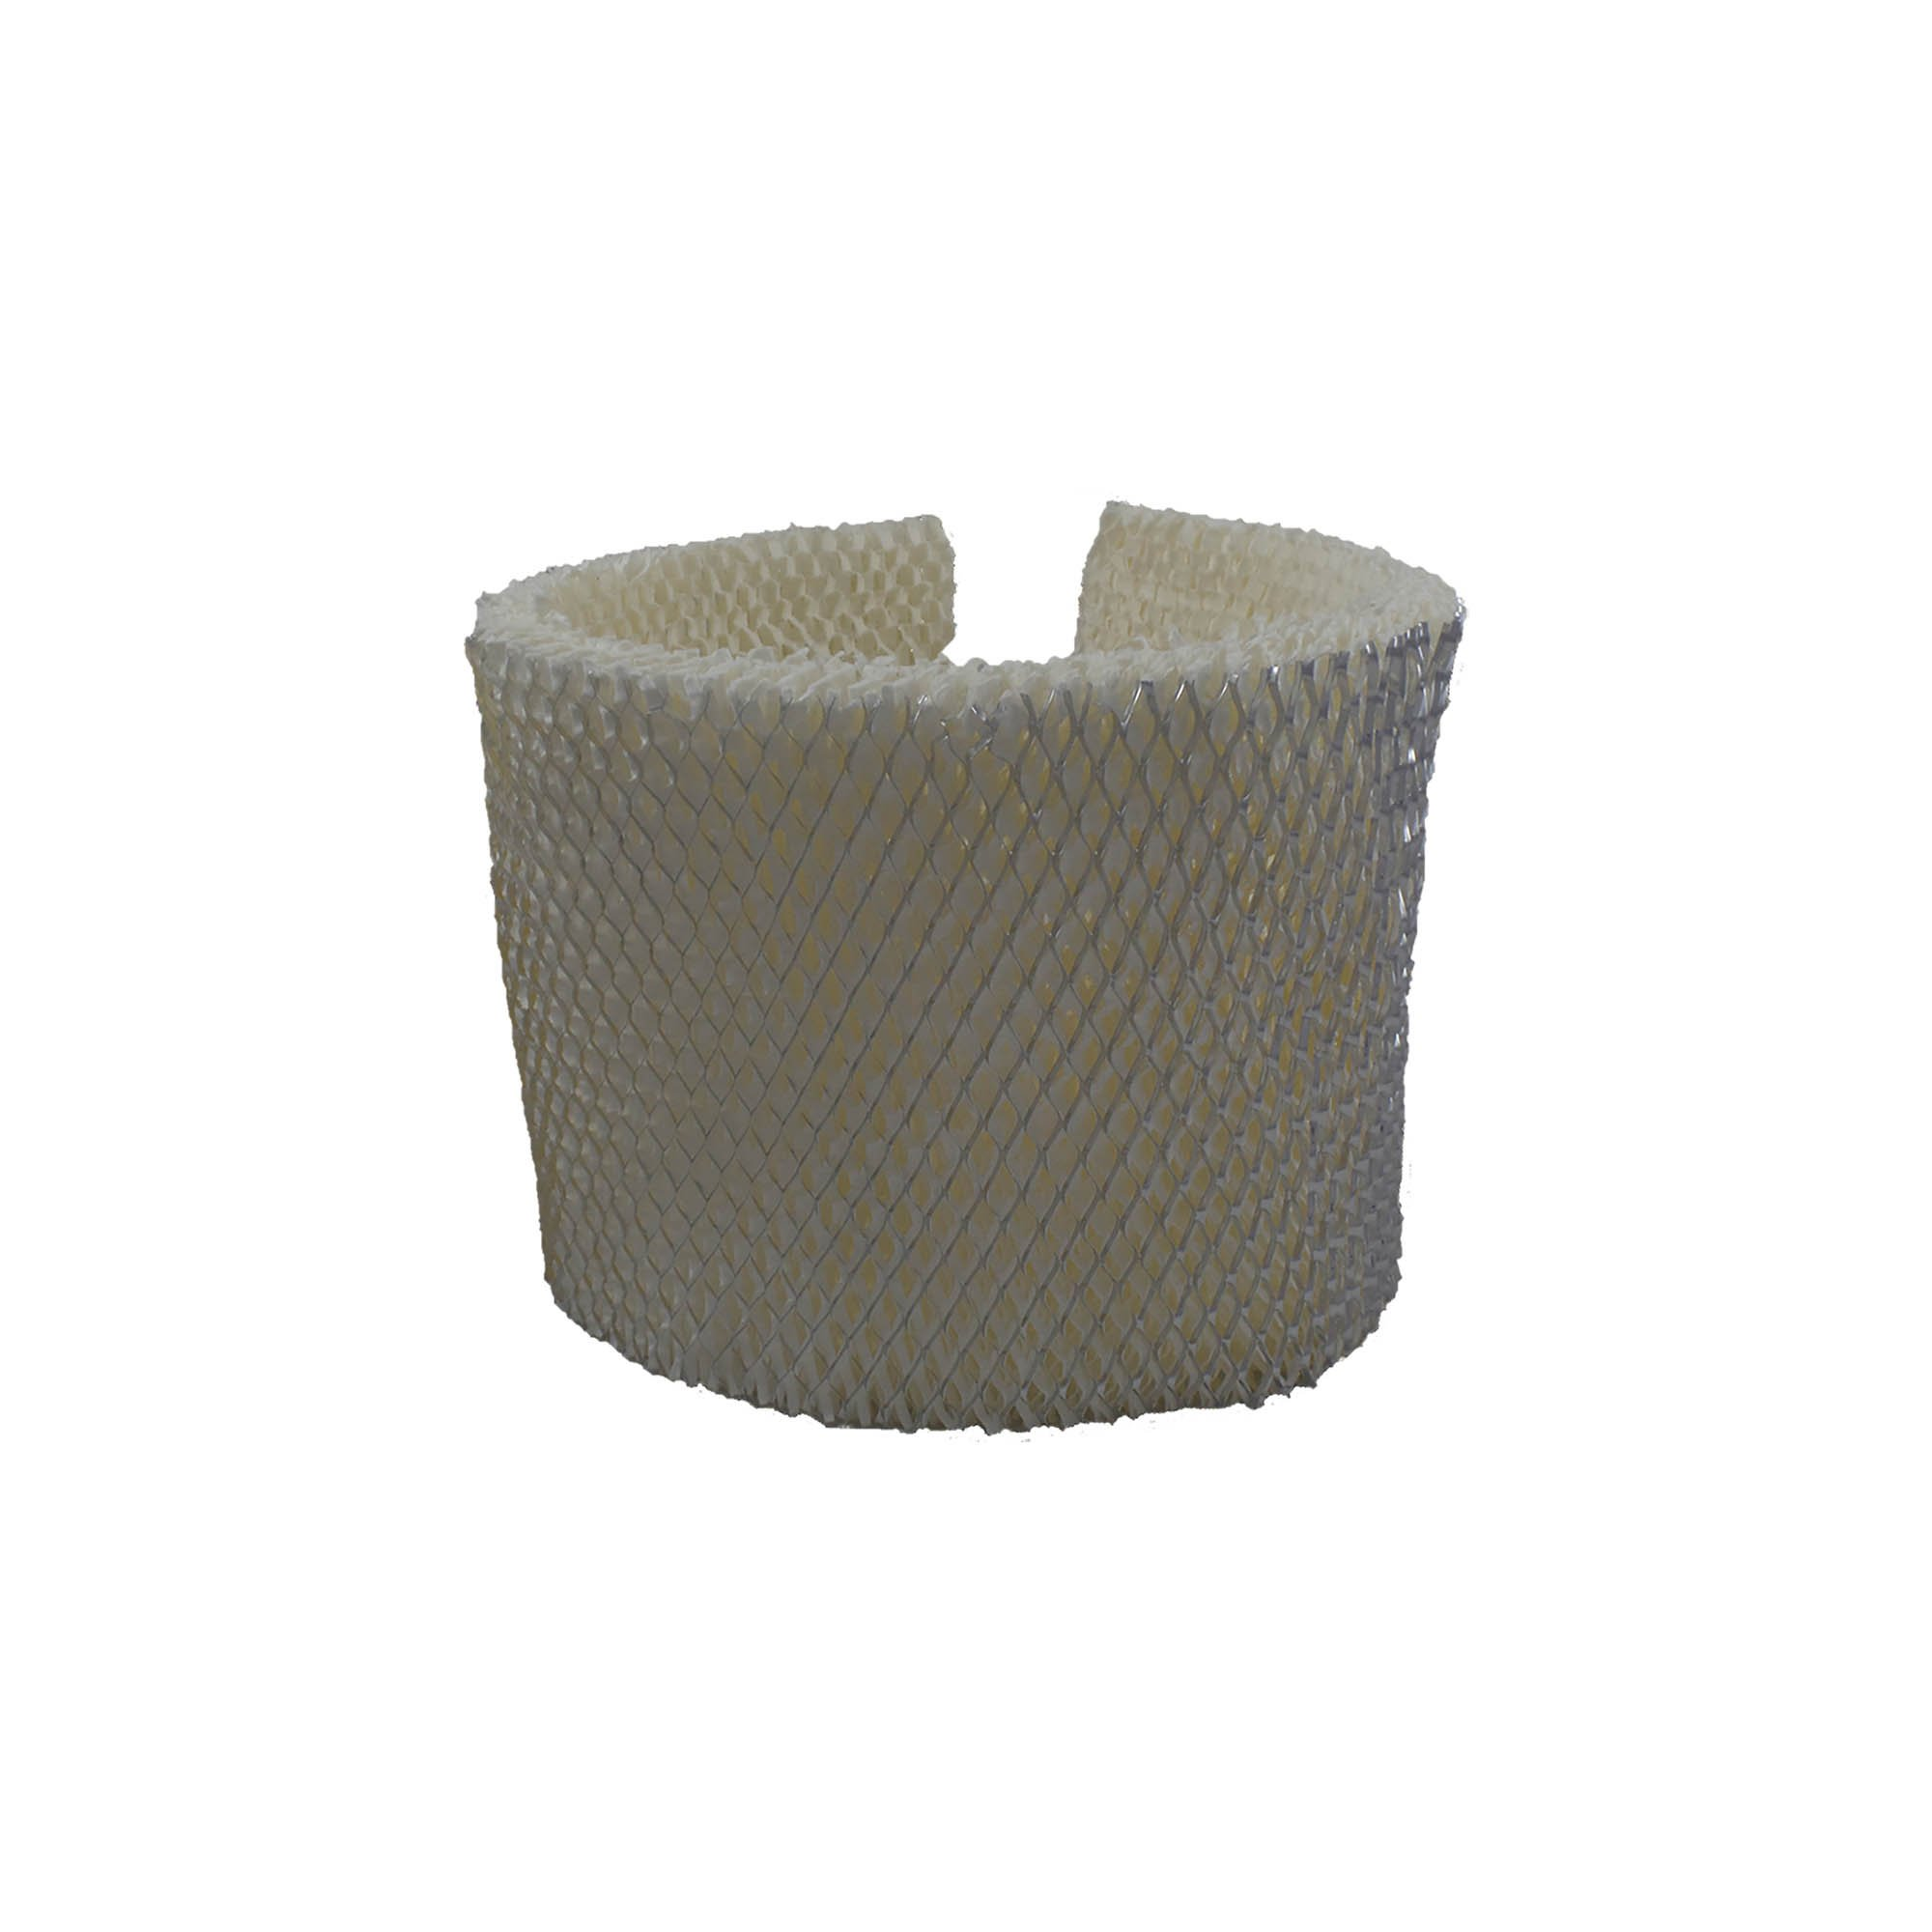 Air Filter Factory Compatible Replacement For Kenmore 15412 Humidifier Filter by Air Filter Factory